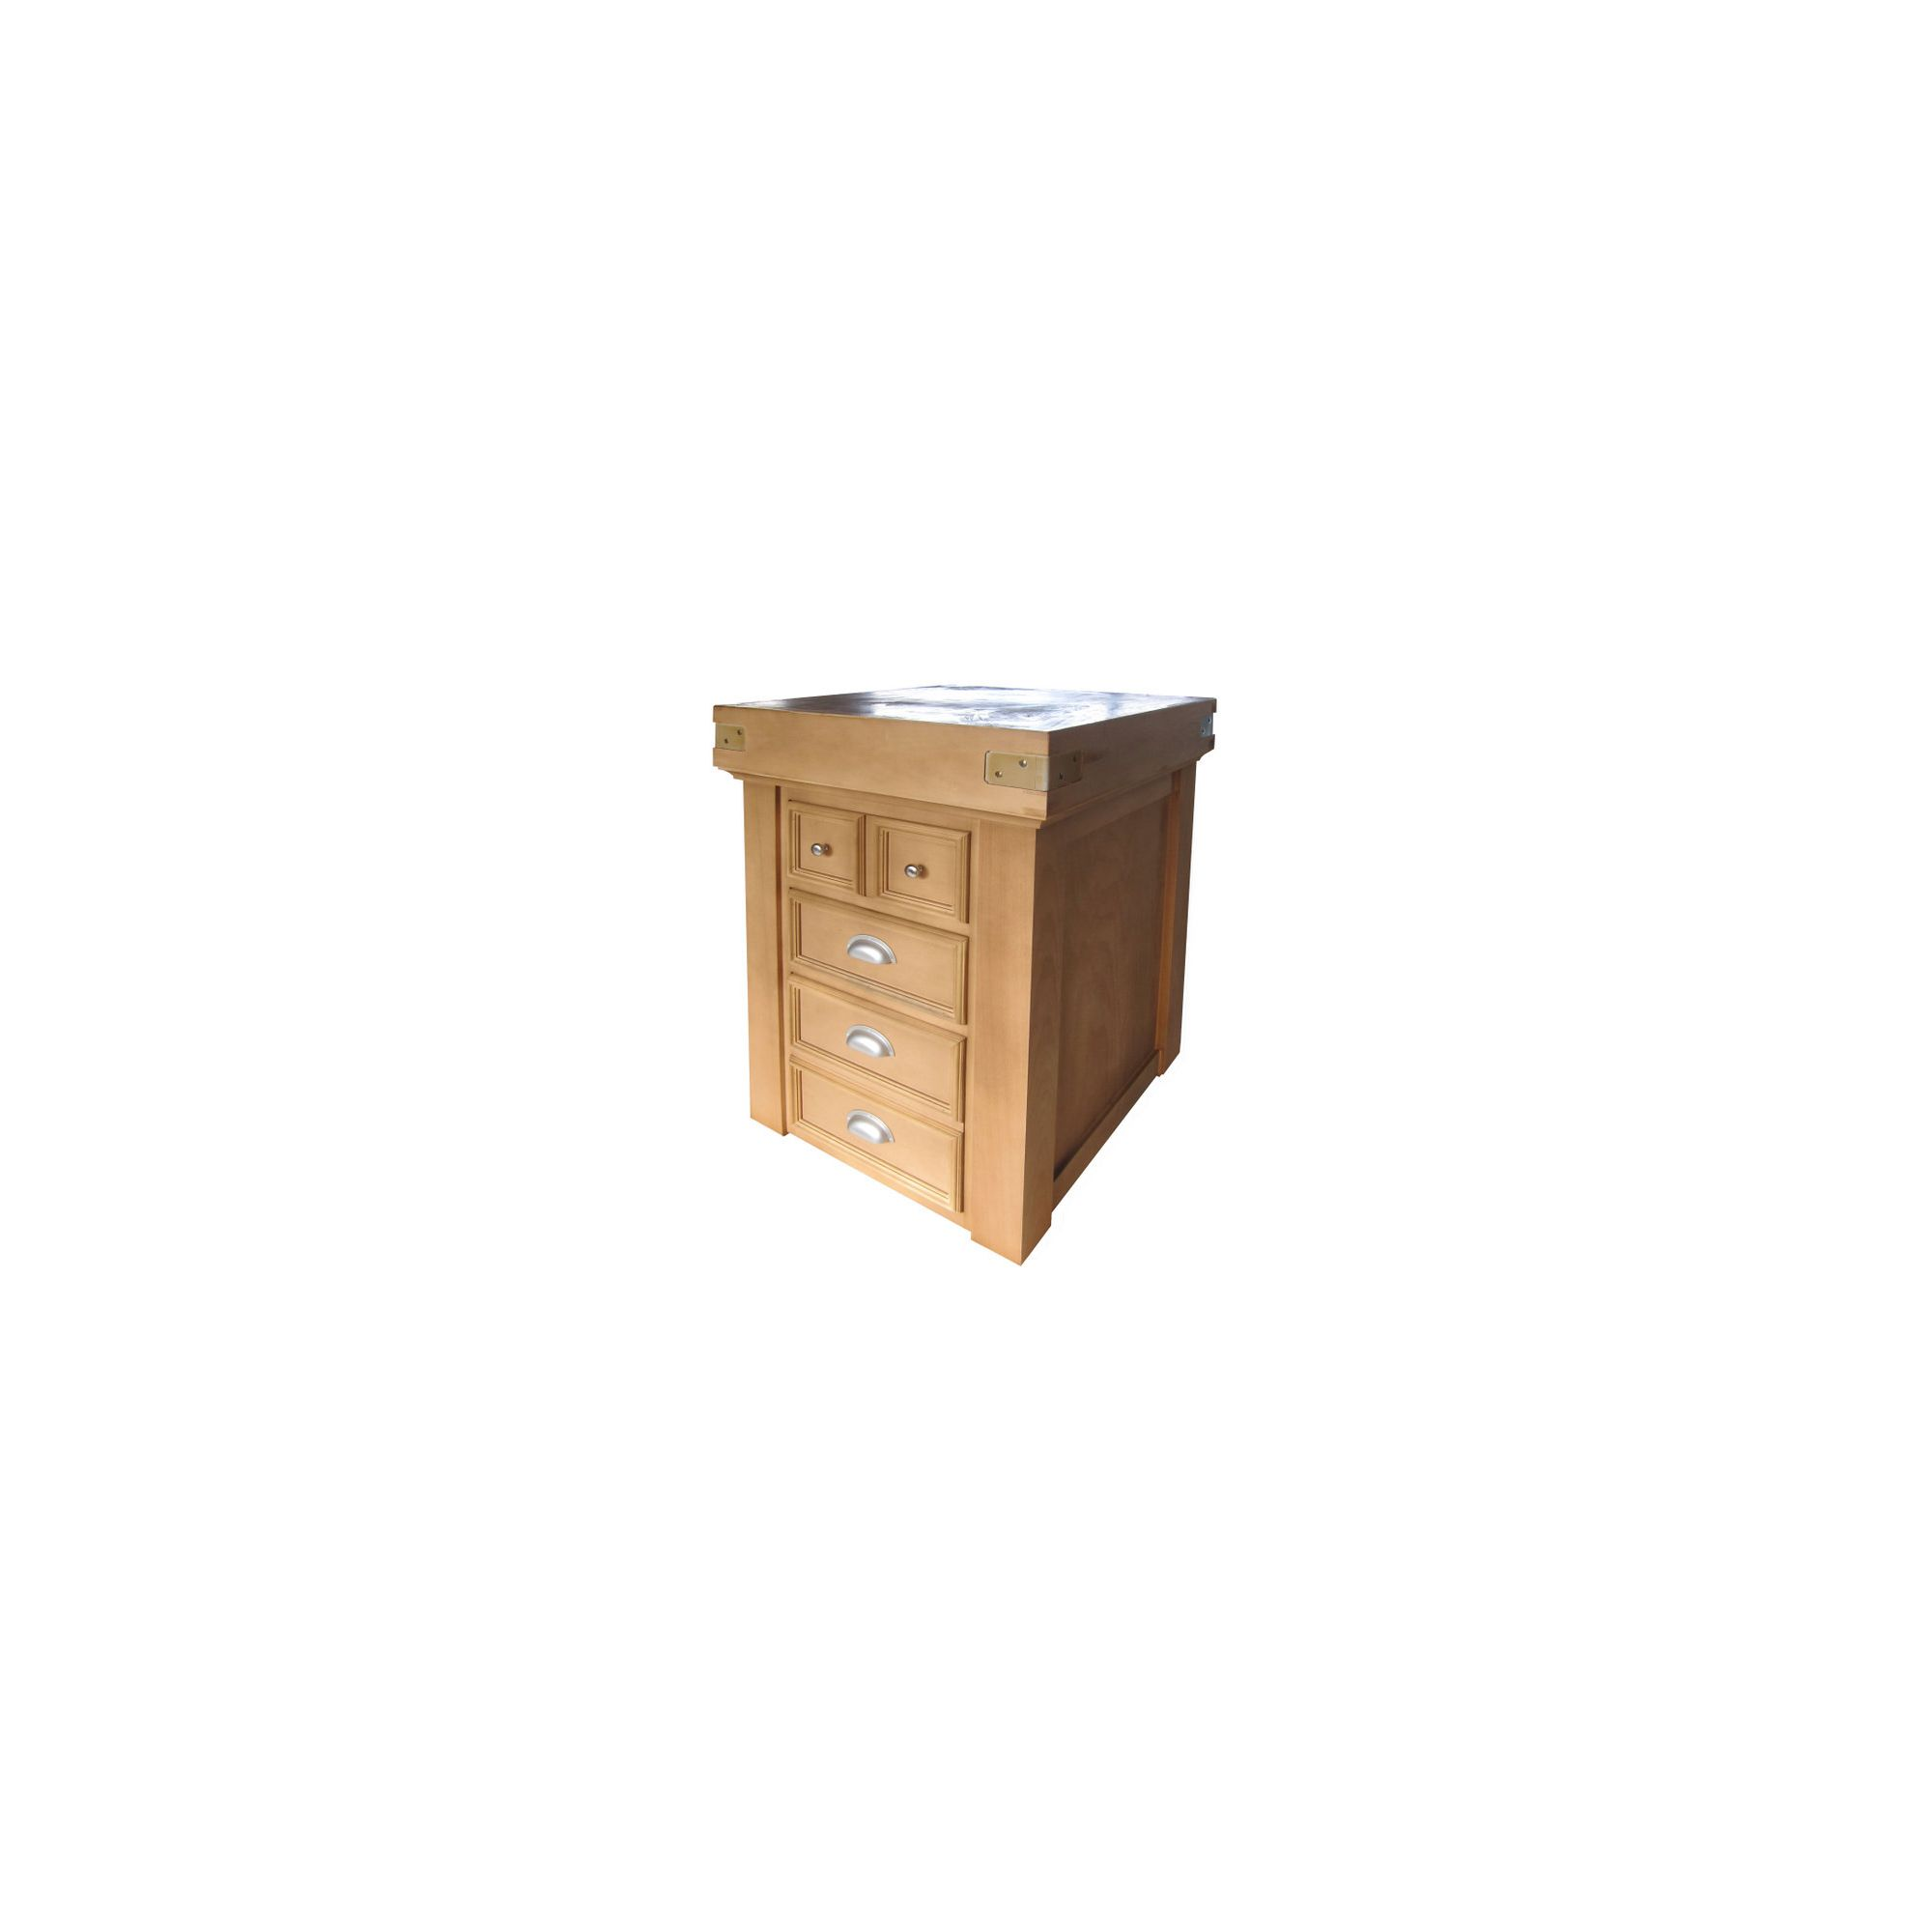 Chabret Traditional Drawers Block - 105cm X 80cm X 60cm at Tesco Direct